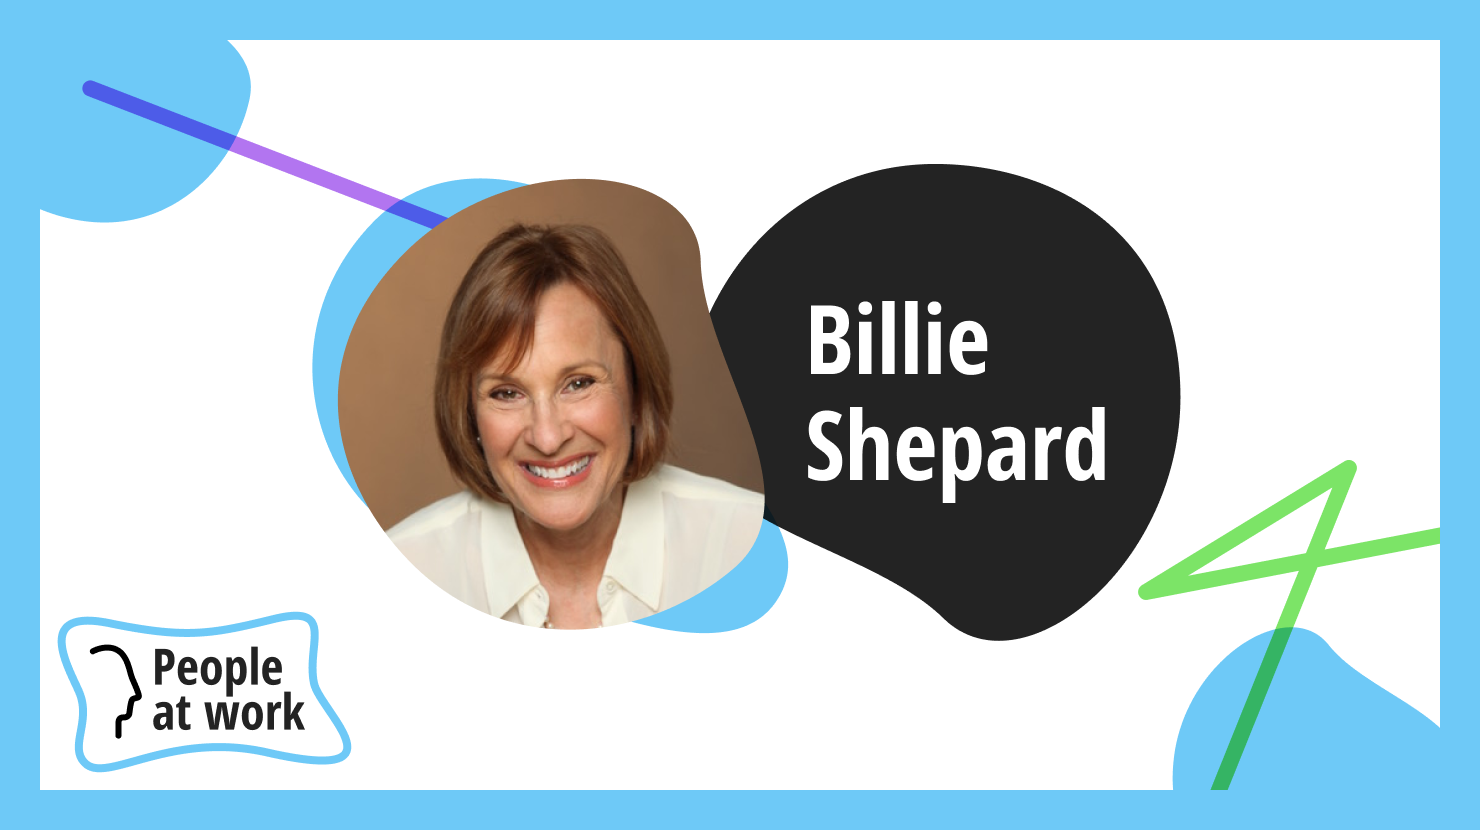 Banish fear of speaking with intention says Billie Shepard